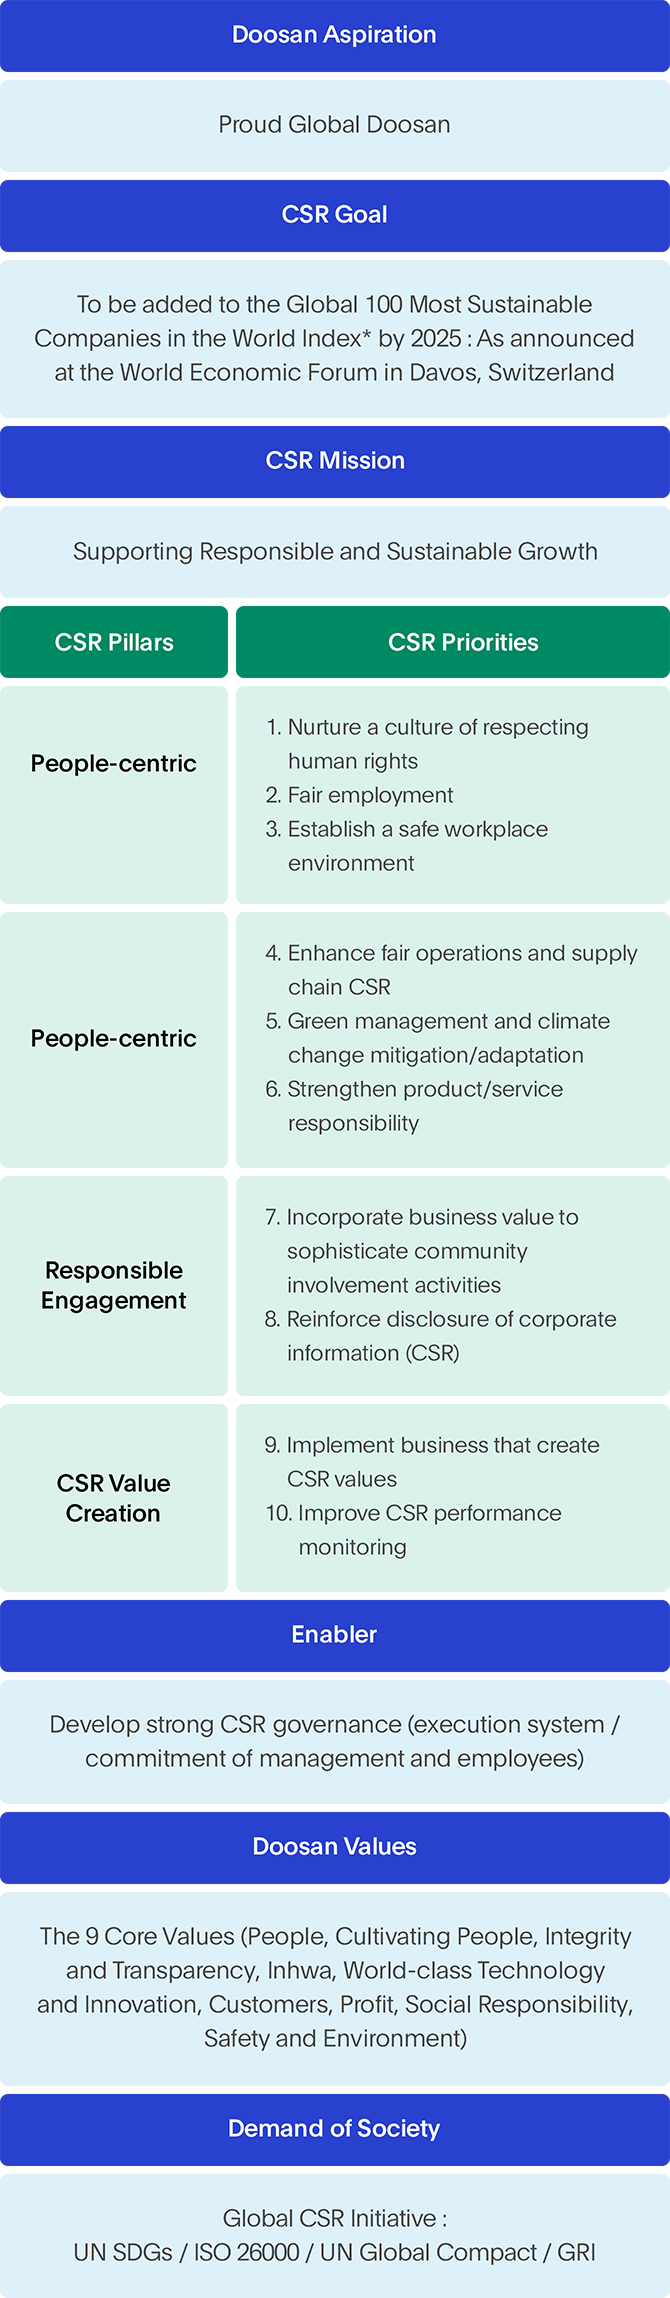 CSR Strategy Diagram Image